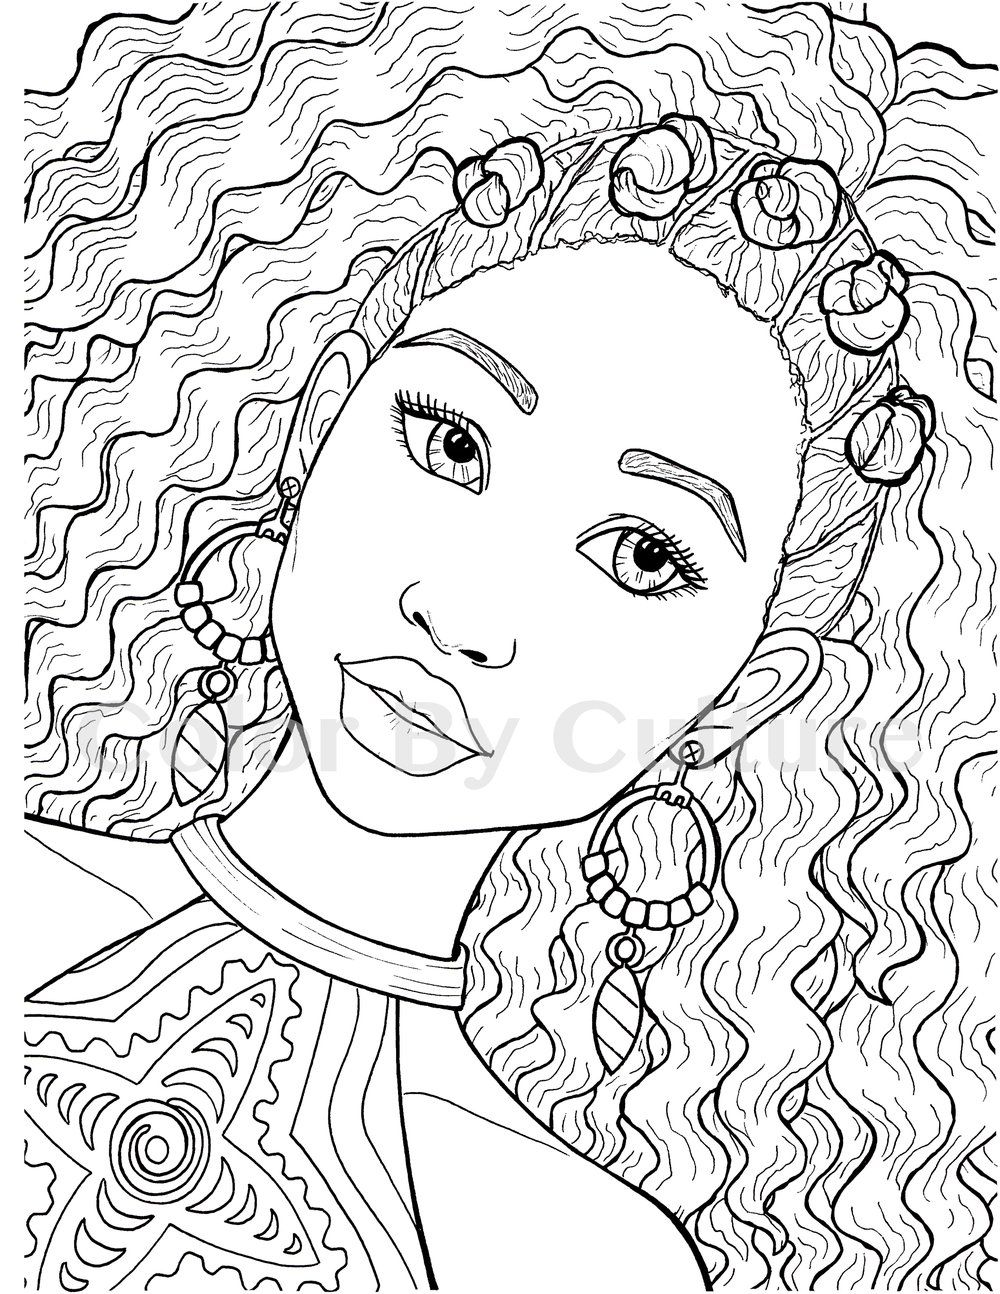 Printable Coloring Book African Fashions Color By Culture Printable Coloring Book Coloring Books Free Coloring Pages